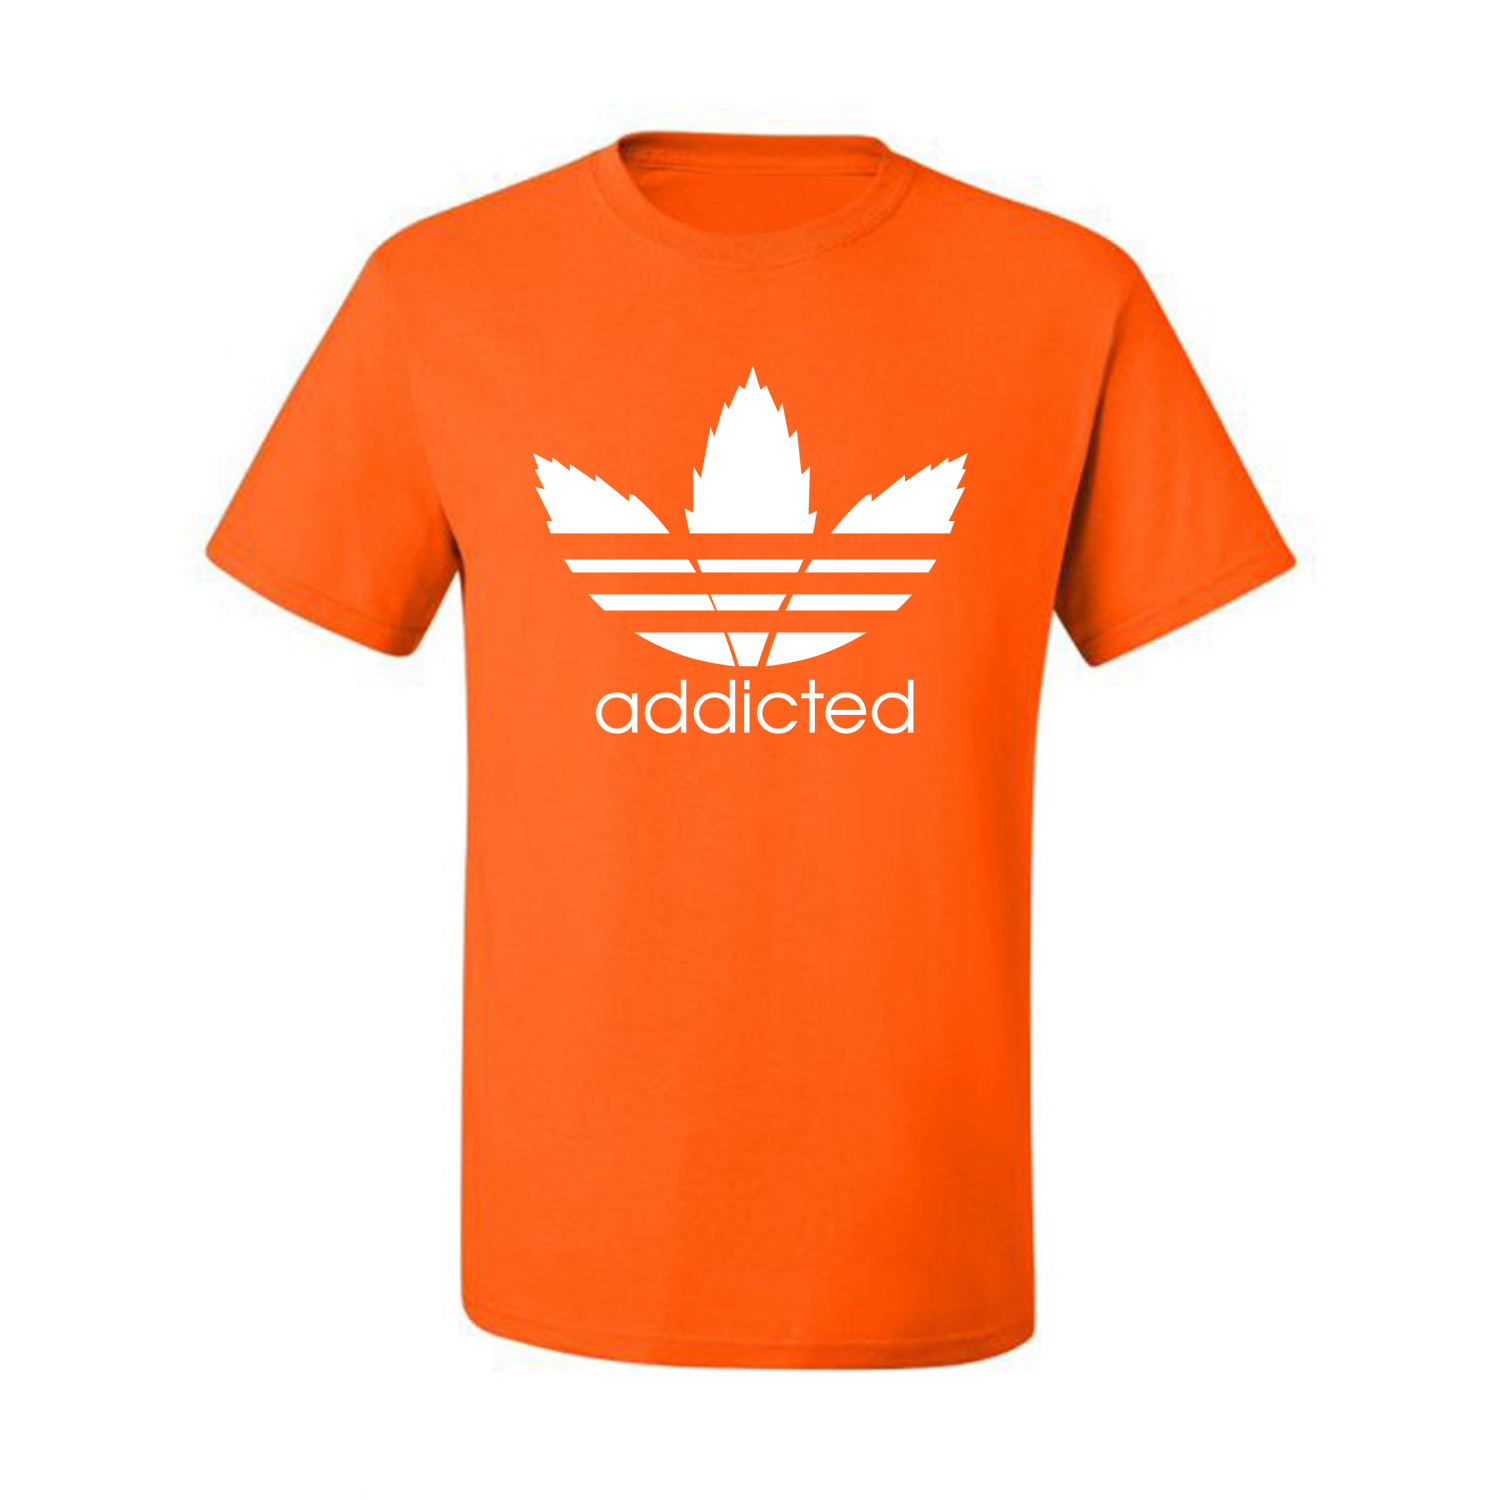 Addicted-White-Pot-Leaf-Mens-Weed-T-Shirt-Graphic-Parody-Tee thumbnail 30